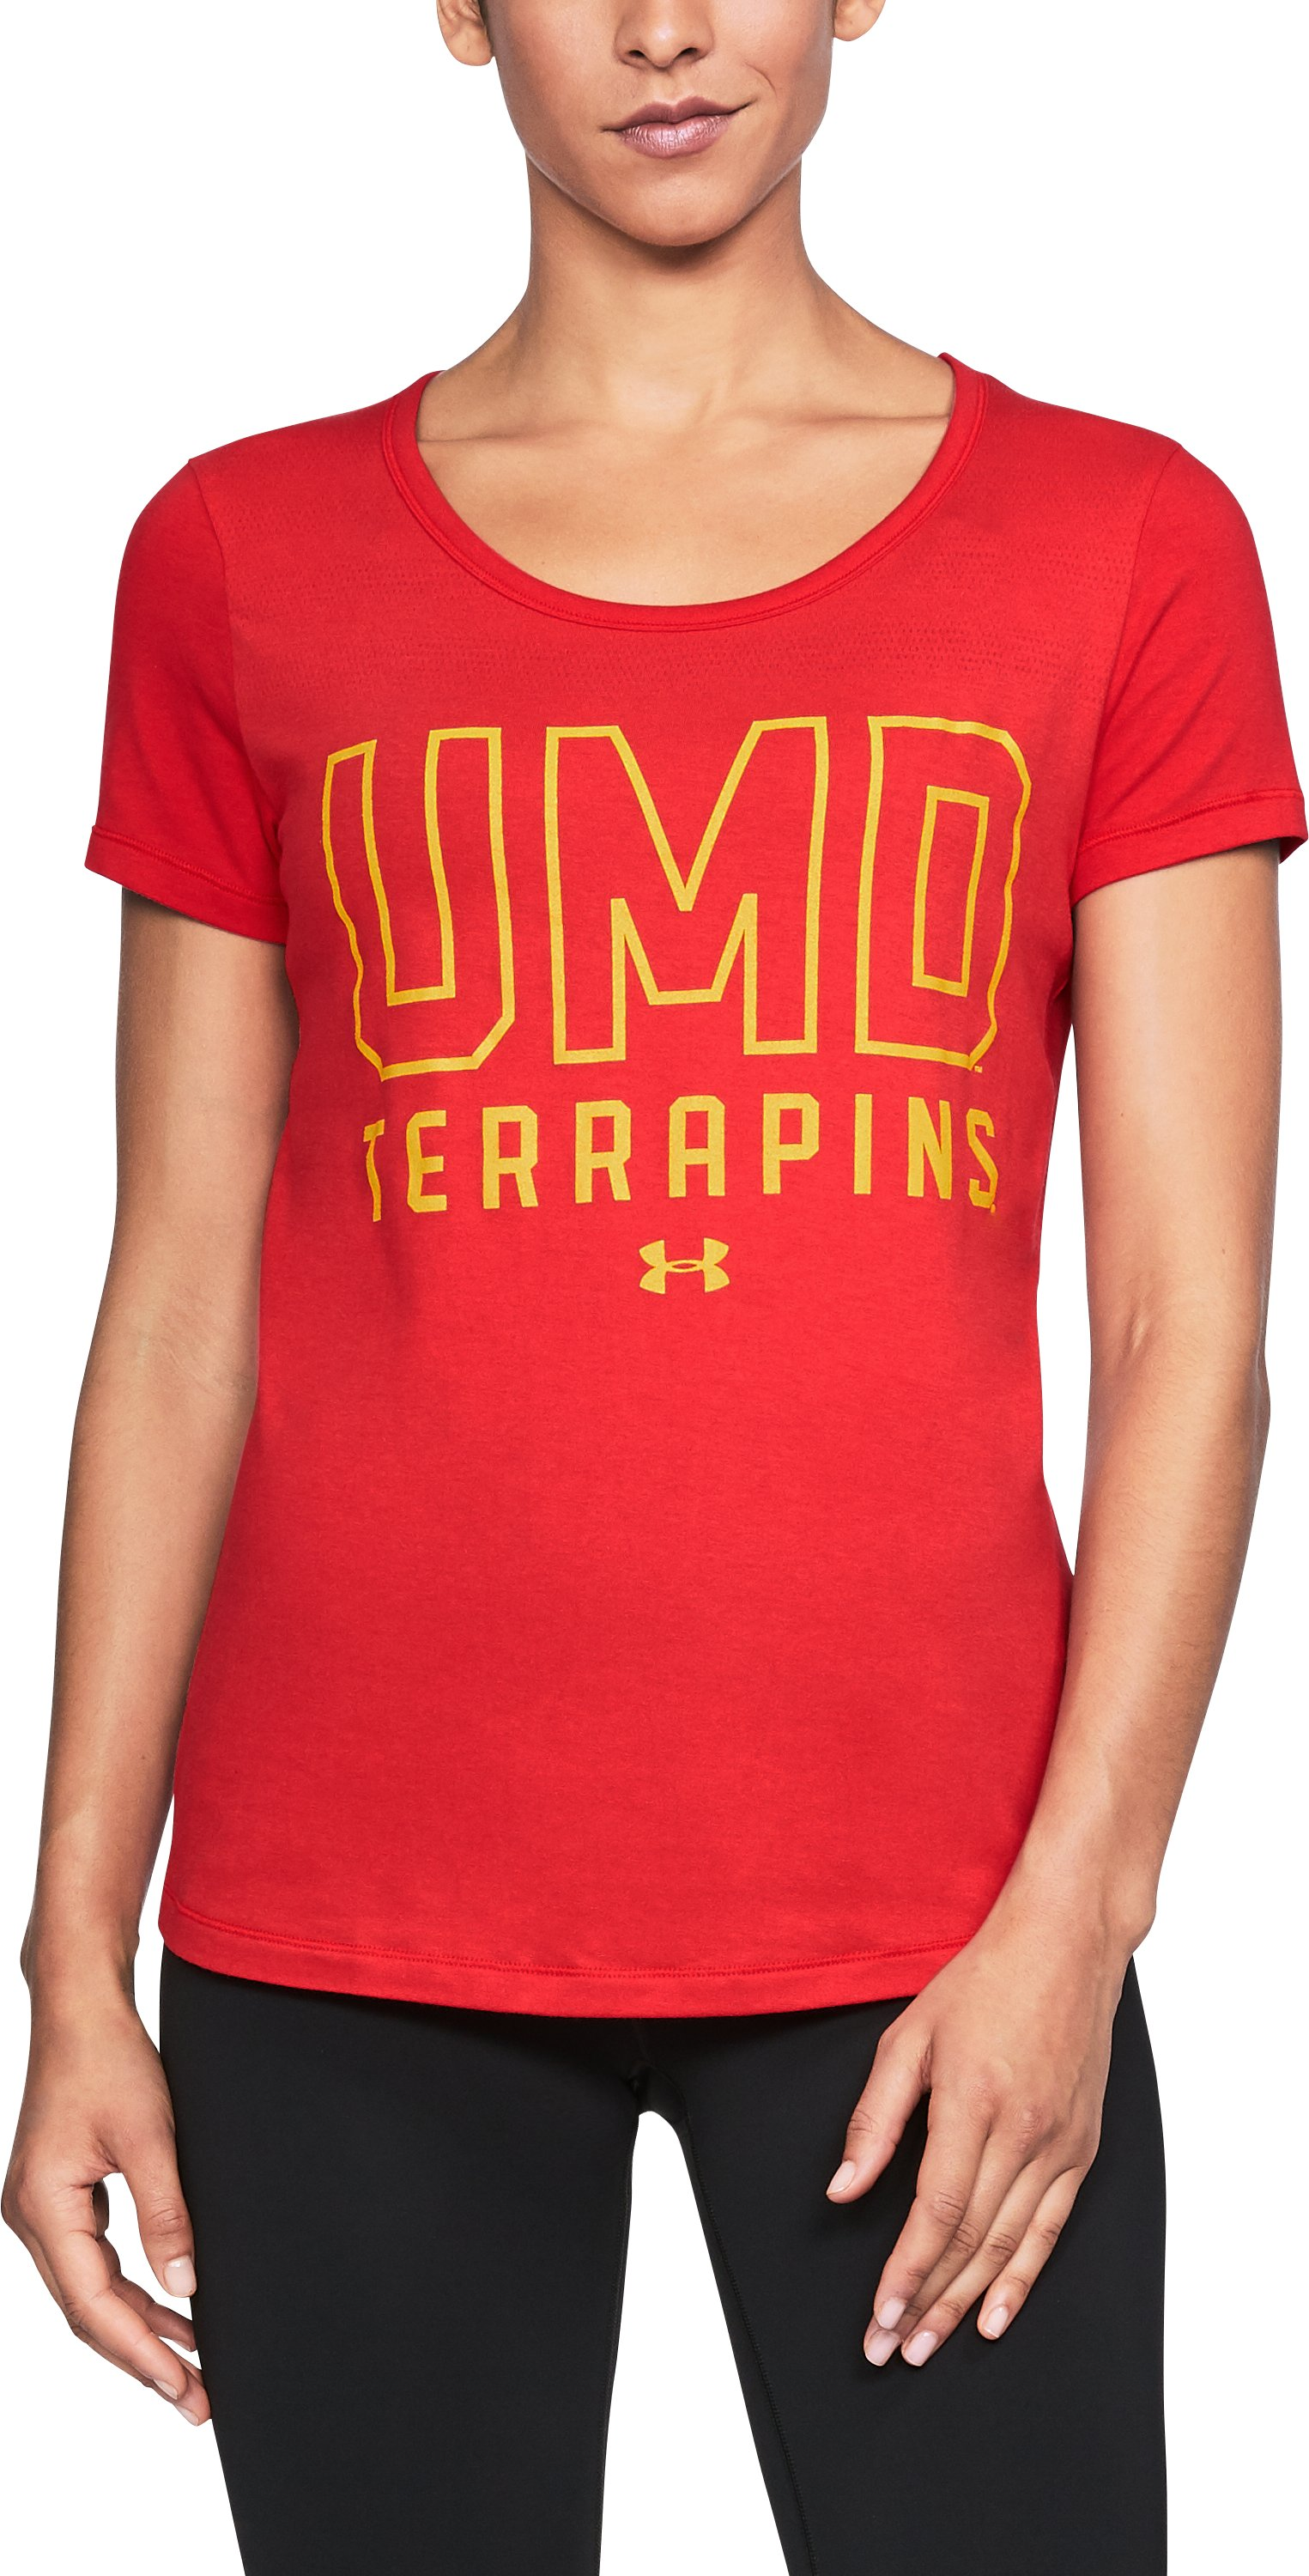 Women's Maryland UA Vent Short Sleeve T-Shirt-Shirt, Red